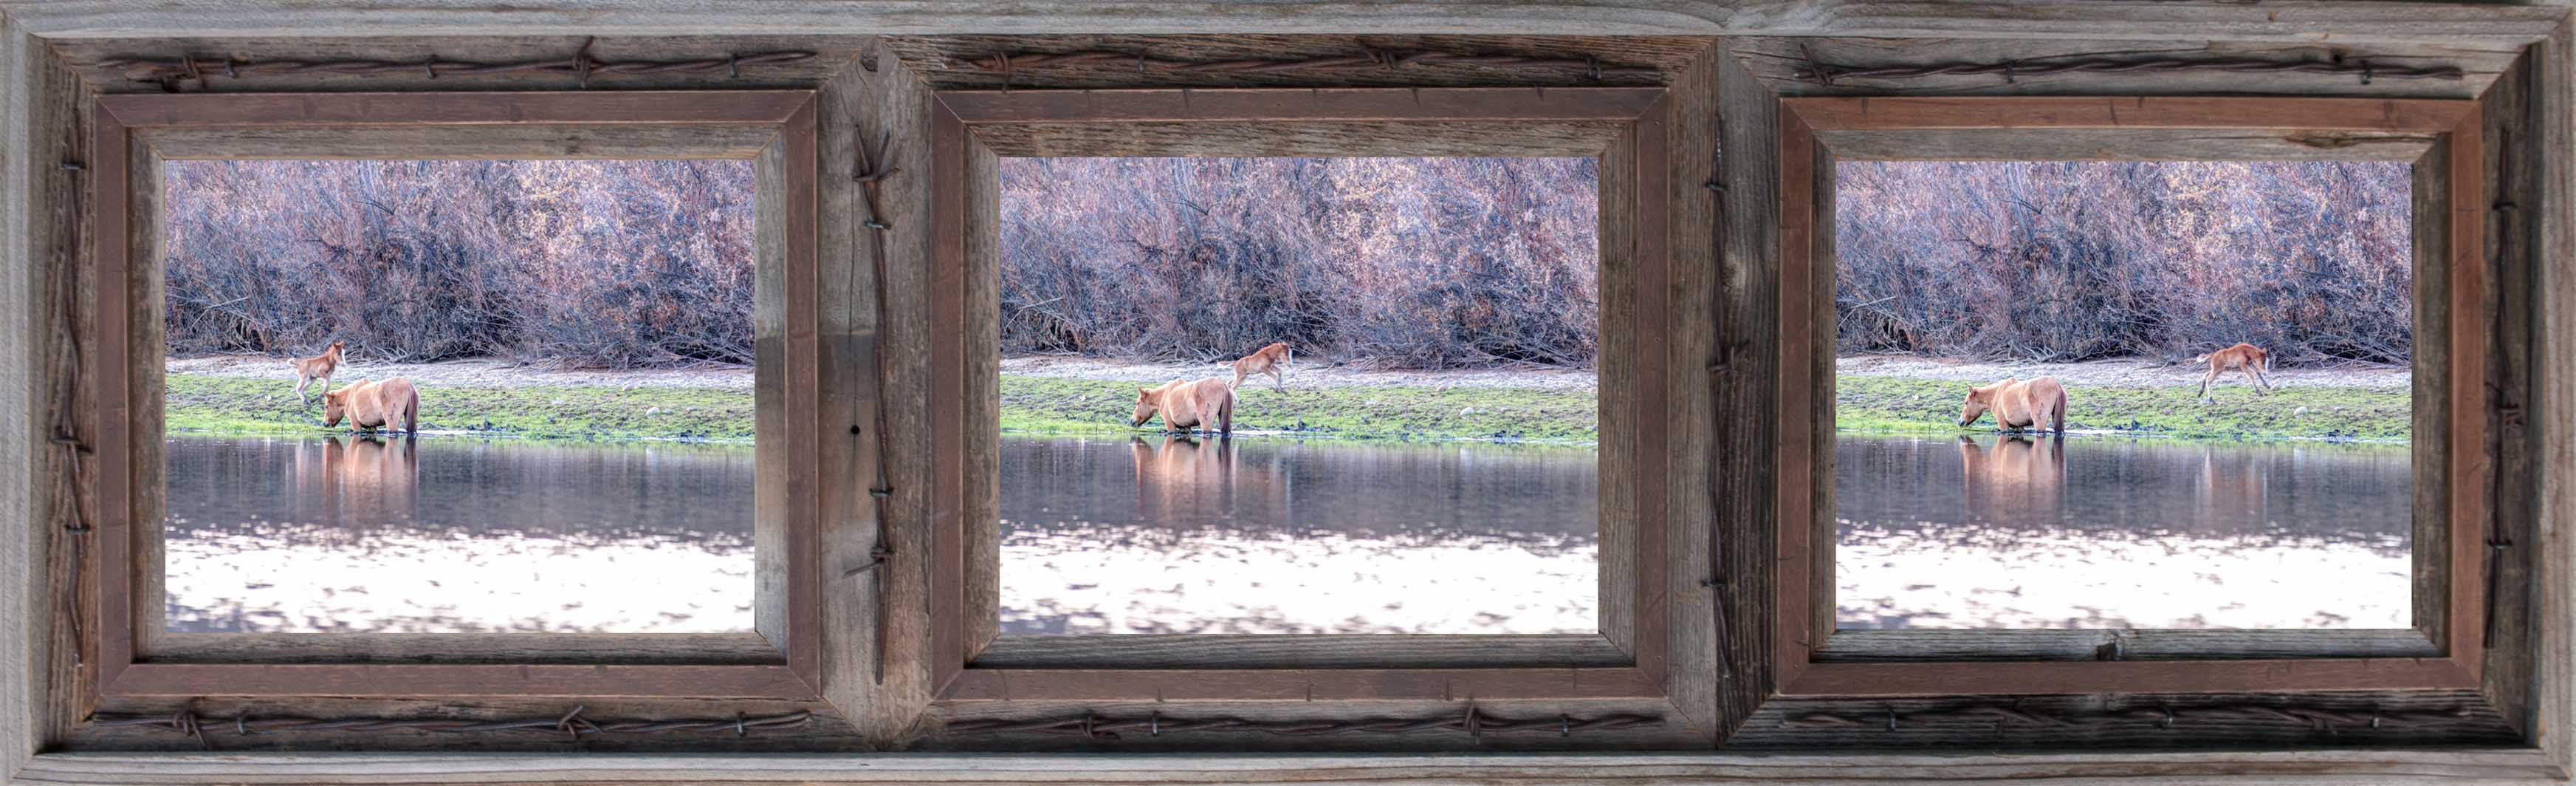 Limited Edition of 25 Museum Grade, Fine Art Prints. I took this sequence on 1/26/2018. I was watching a herd of mustangs from...